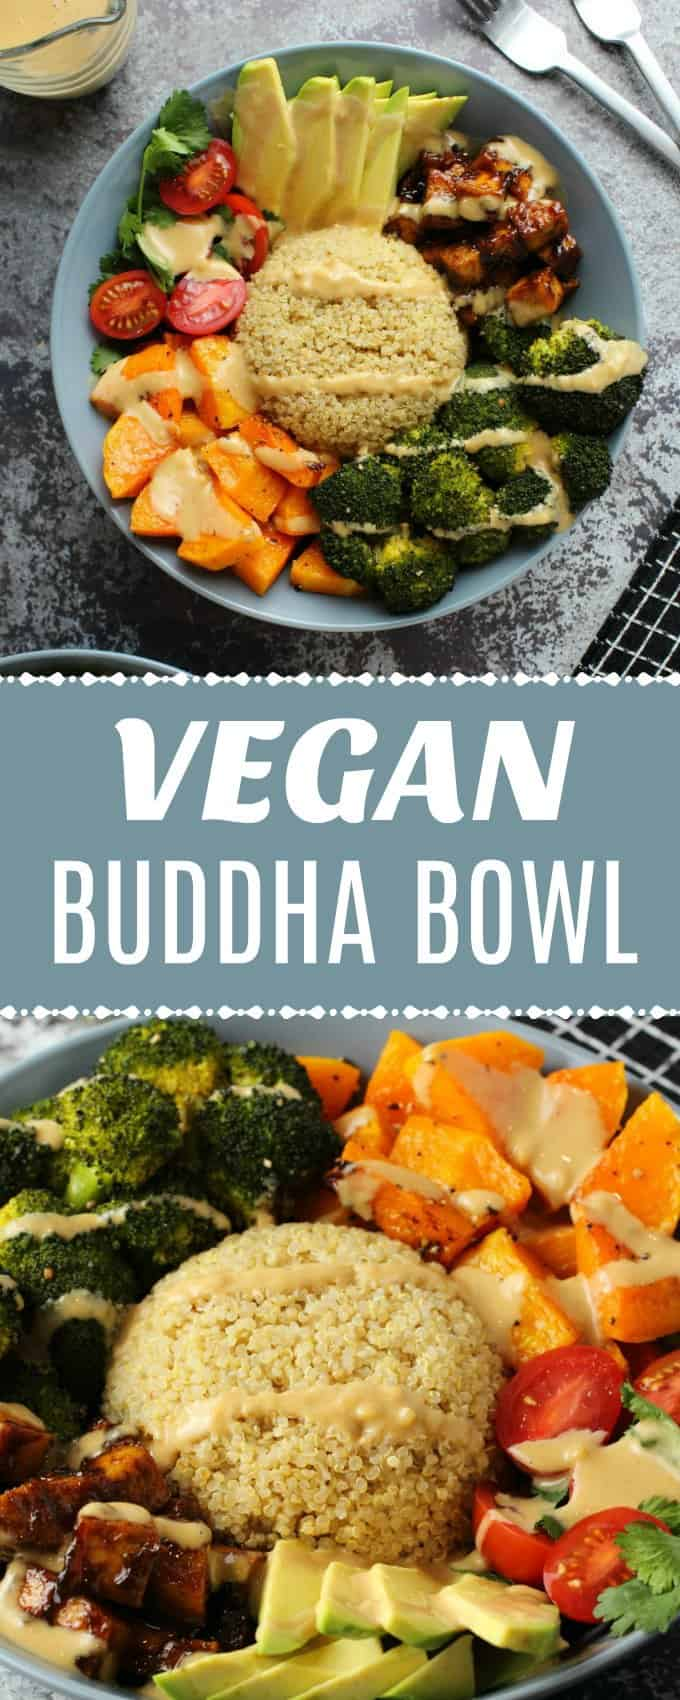 Super healthy and colorful vegan buddha bowl recipe, super simple, amazingly delicious and very satisfying. Gluten-free. | lovingitvegan.com